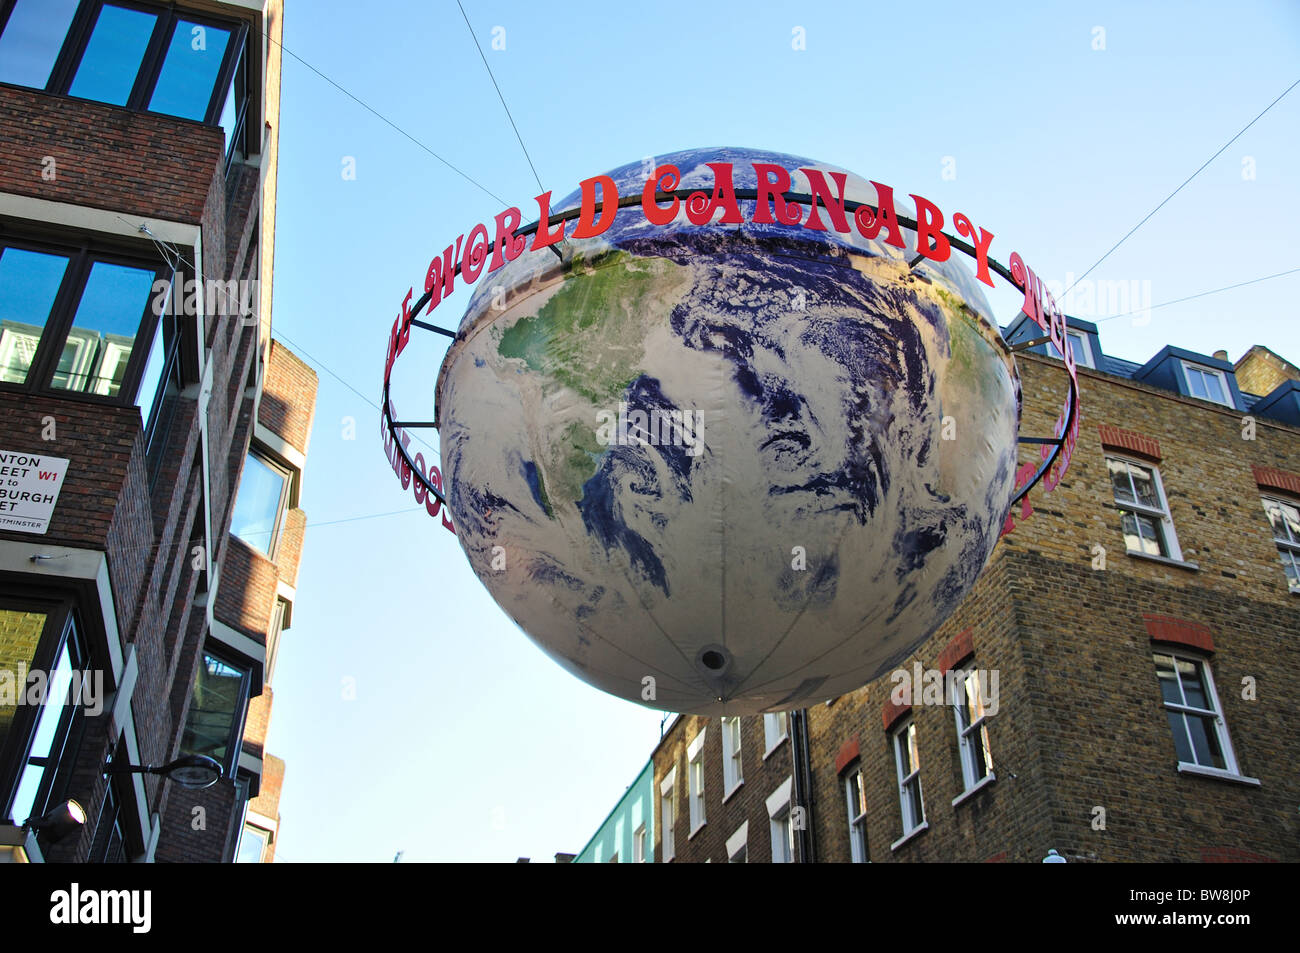 Carnaby Street, Soho, West End, City of Westminster, Greater London, England, United Kingdom - Stock Image